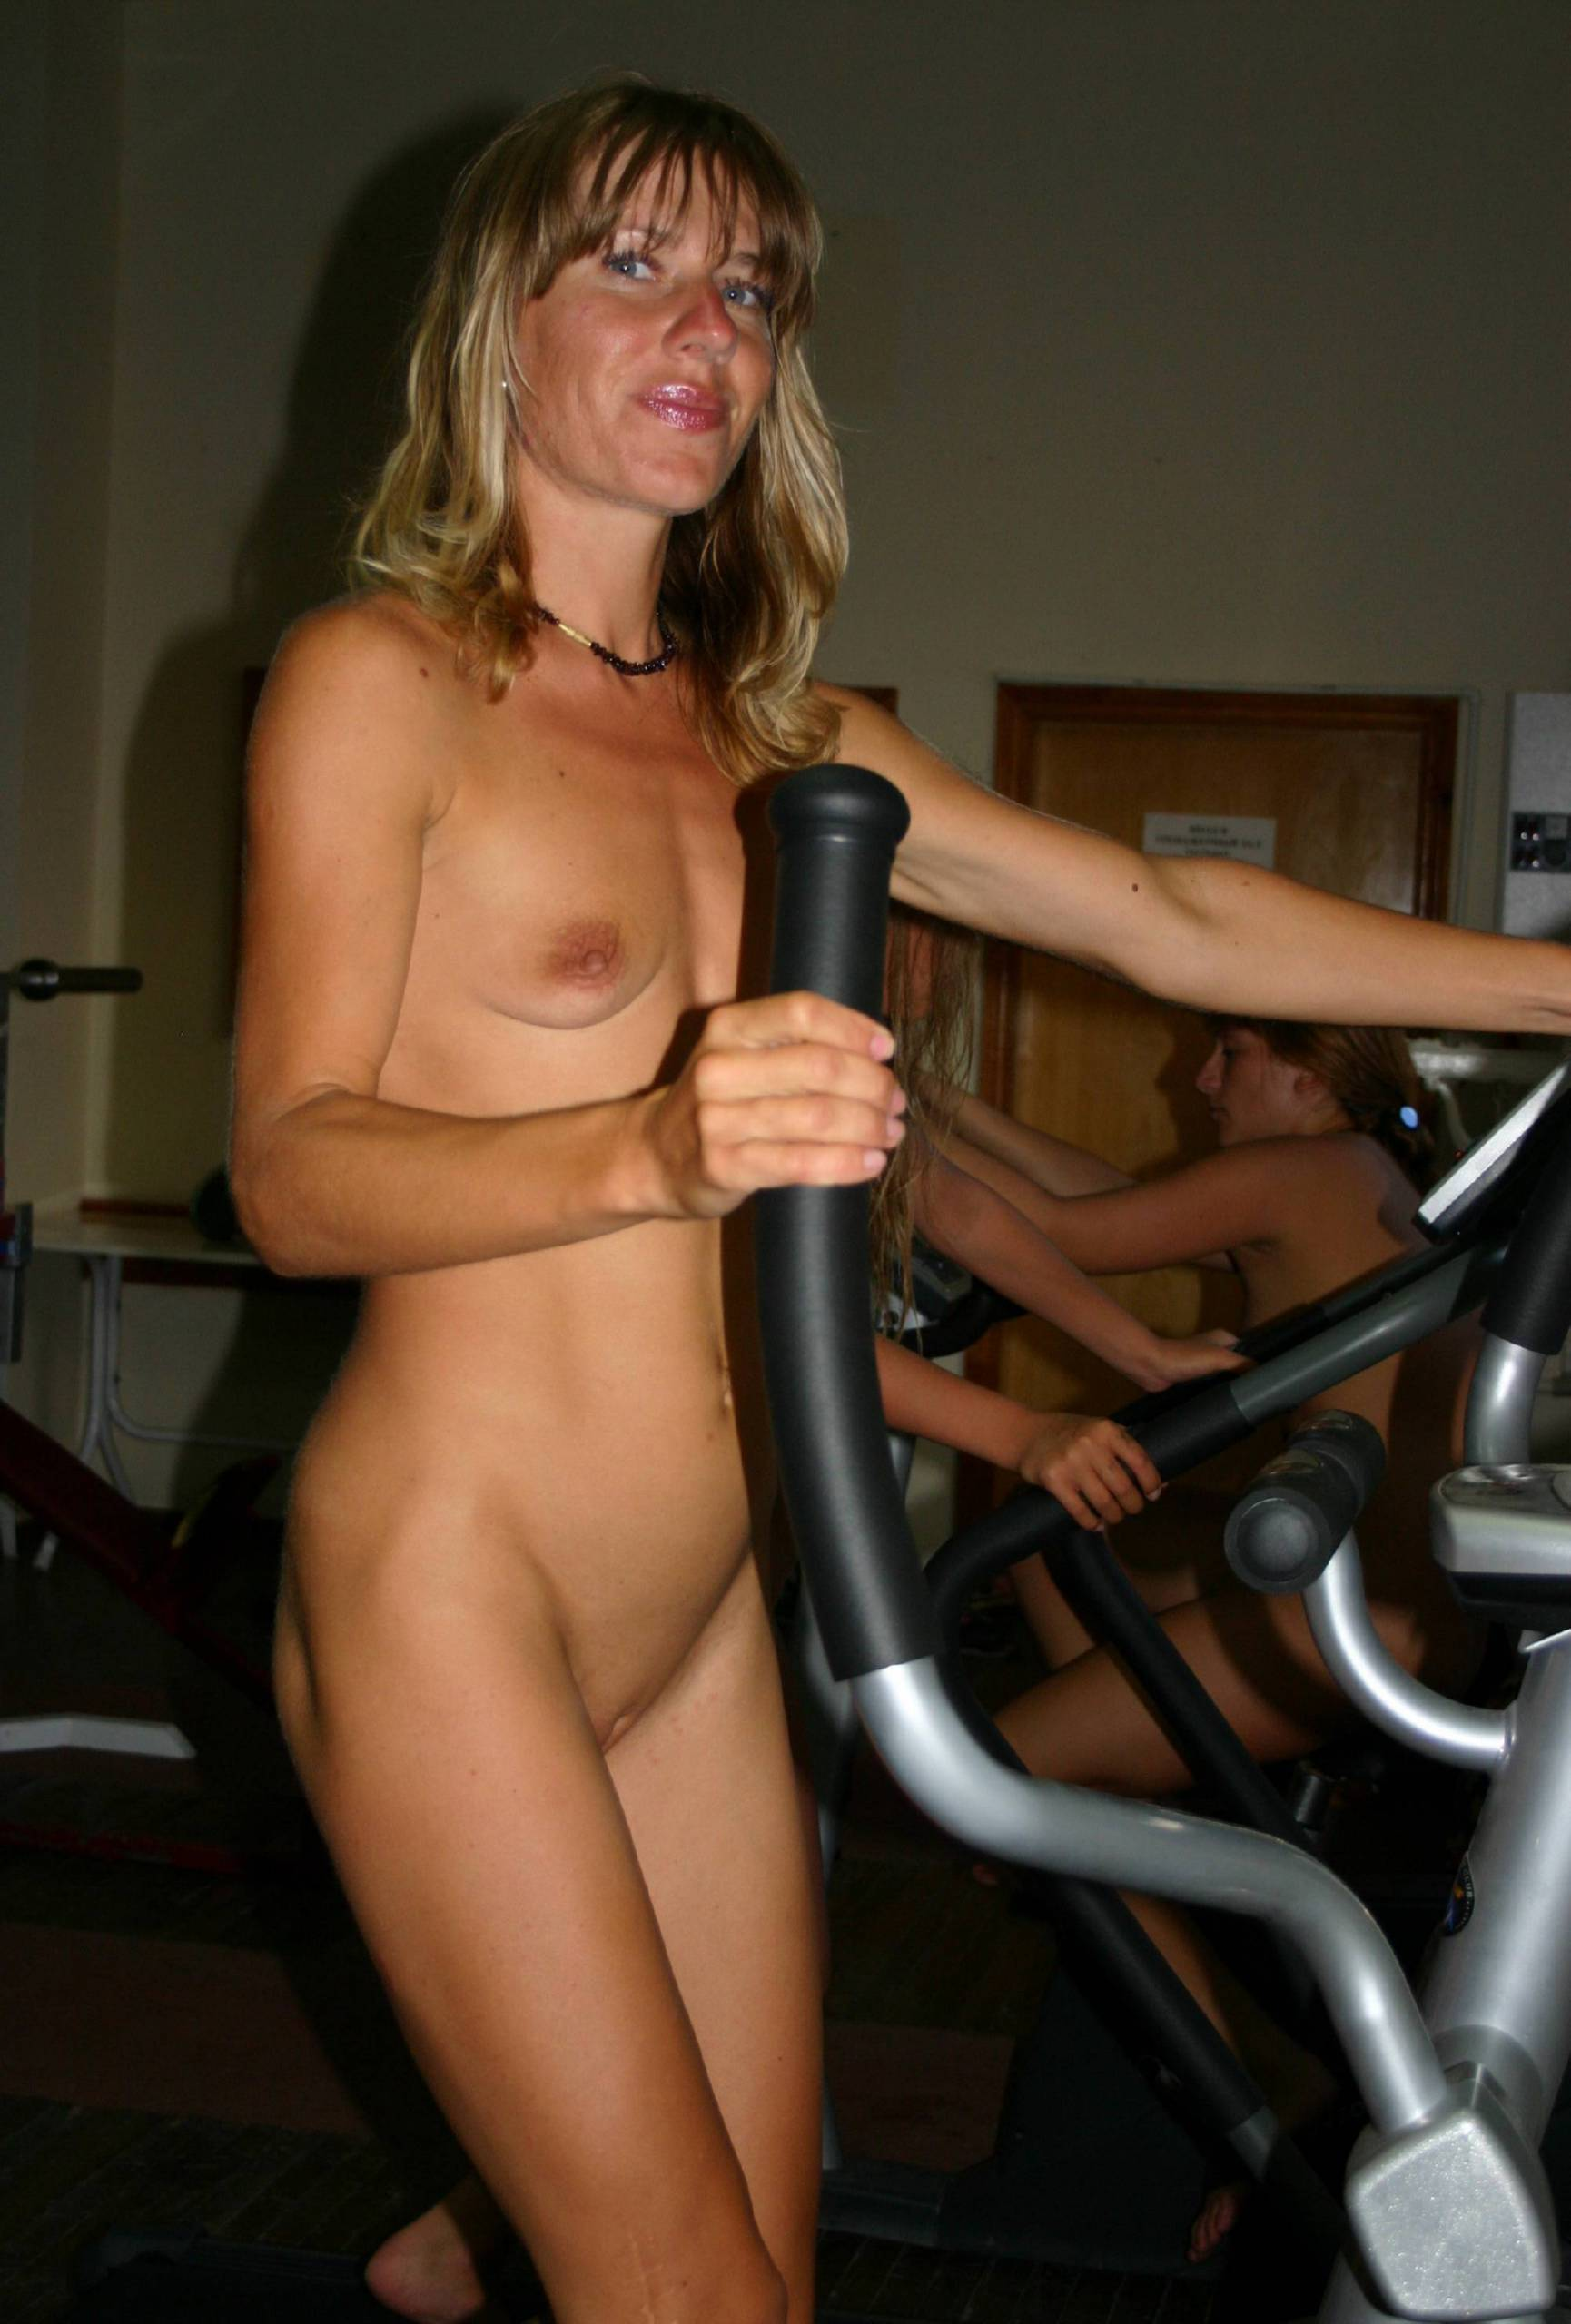 Nudist Training Equipment - 1